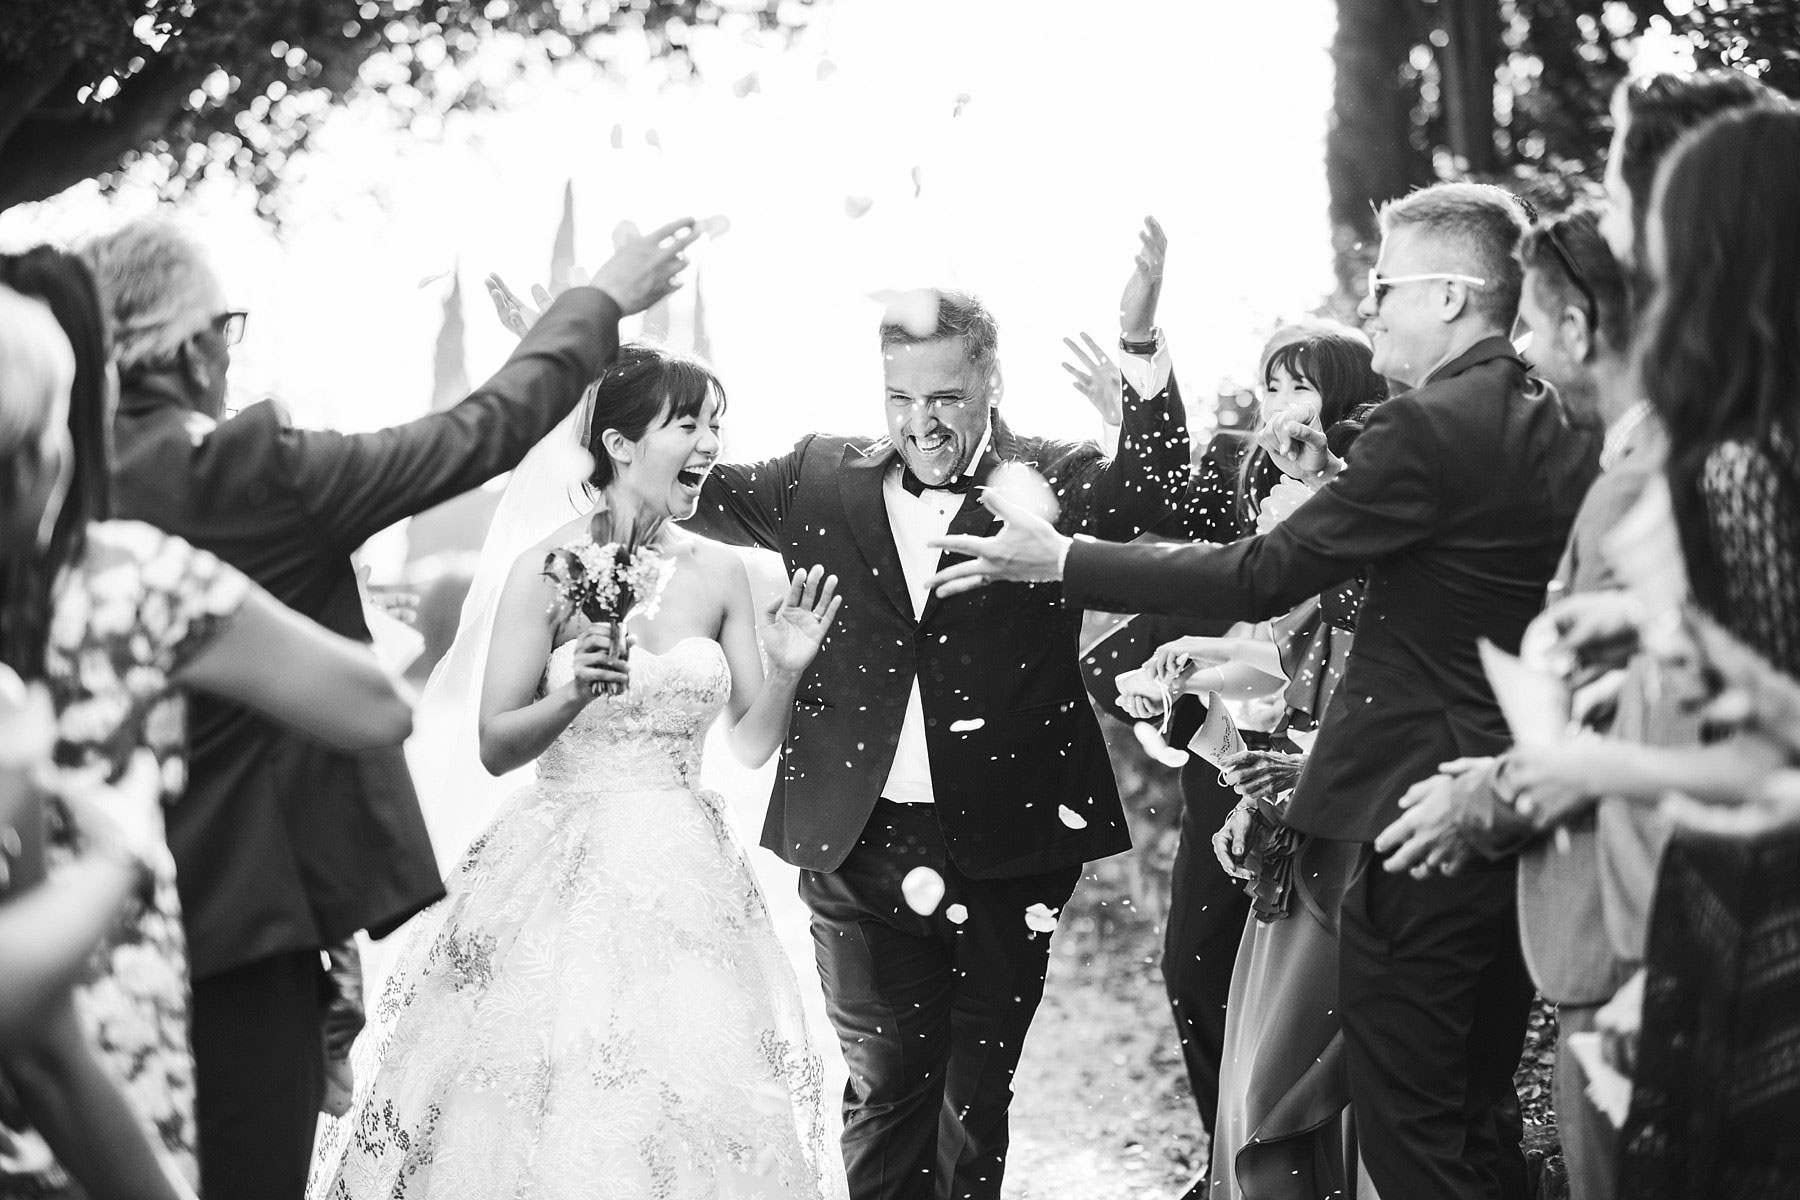 Gorgeous and exciting wedding photo during petal throwing at Villa Le Fontanelle for this elegant and intimate destination marriage in Florence